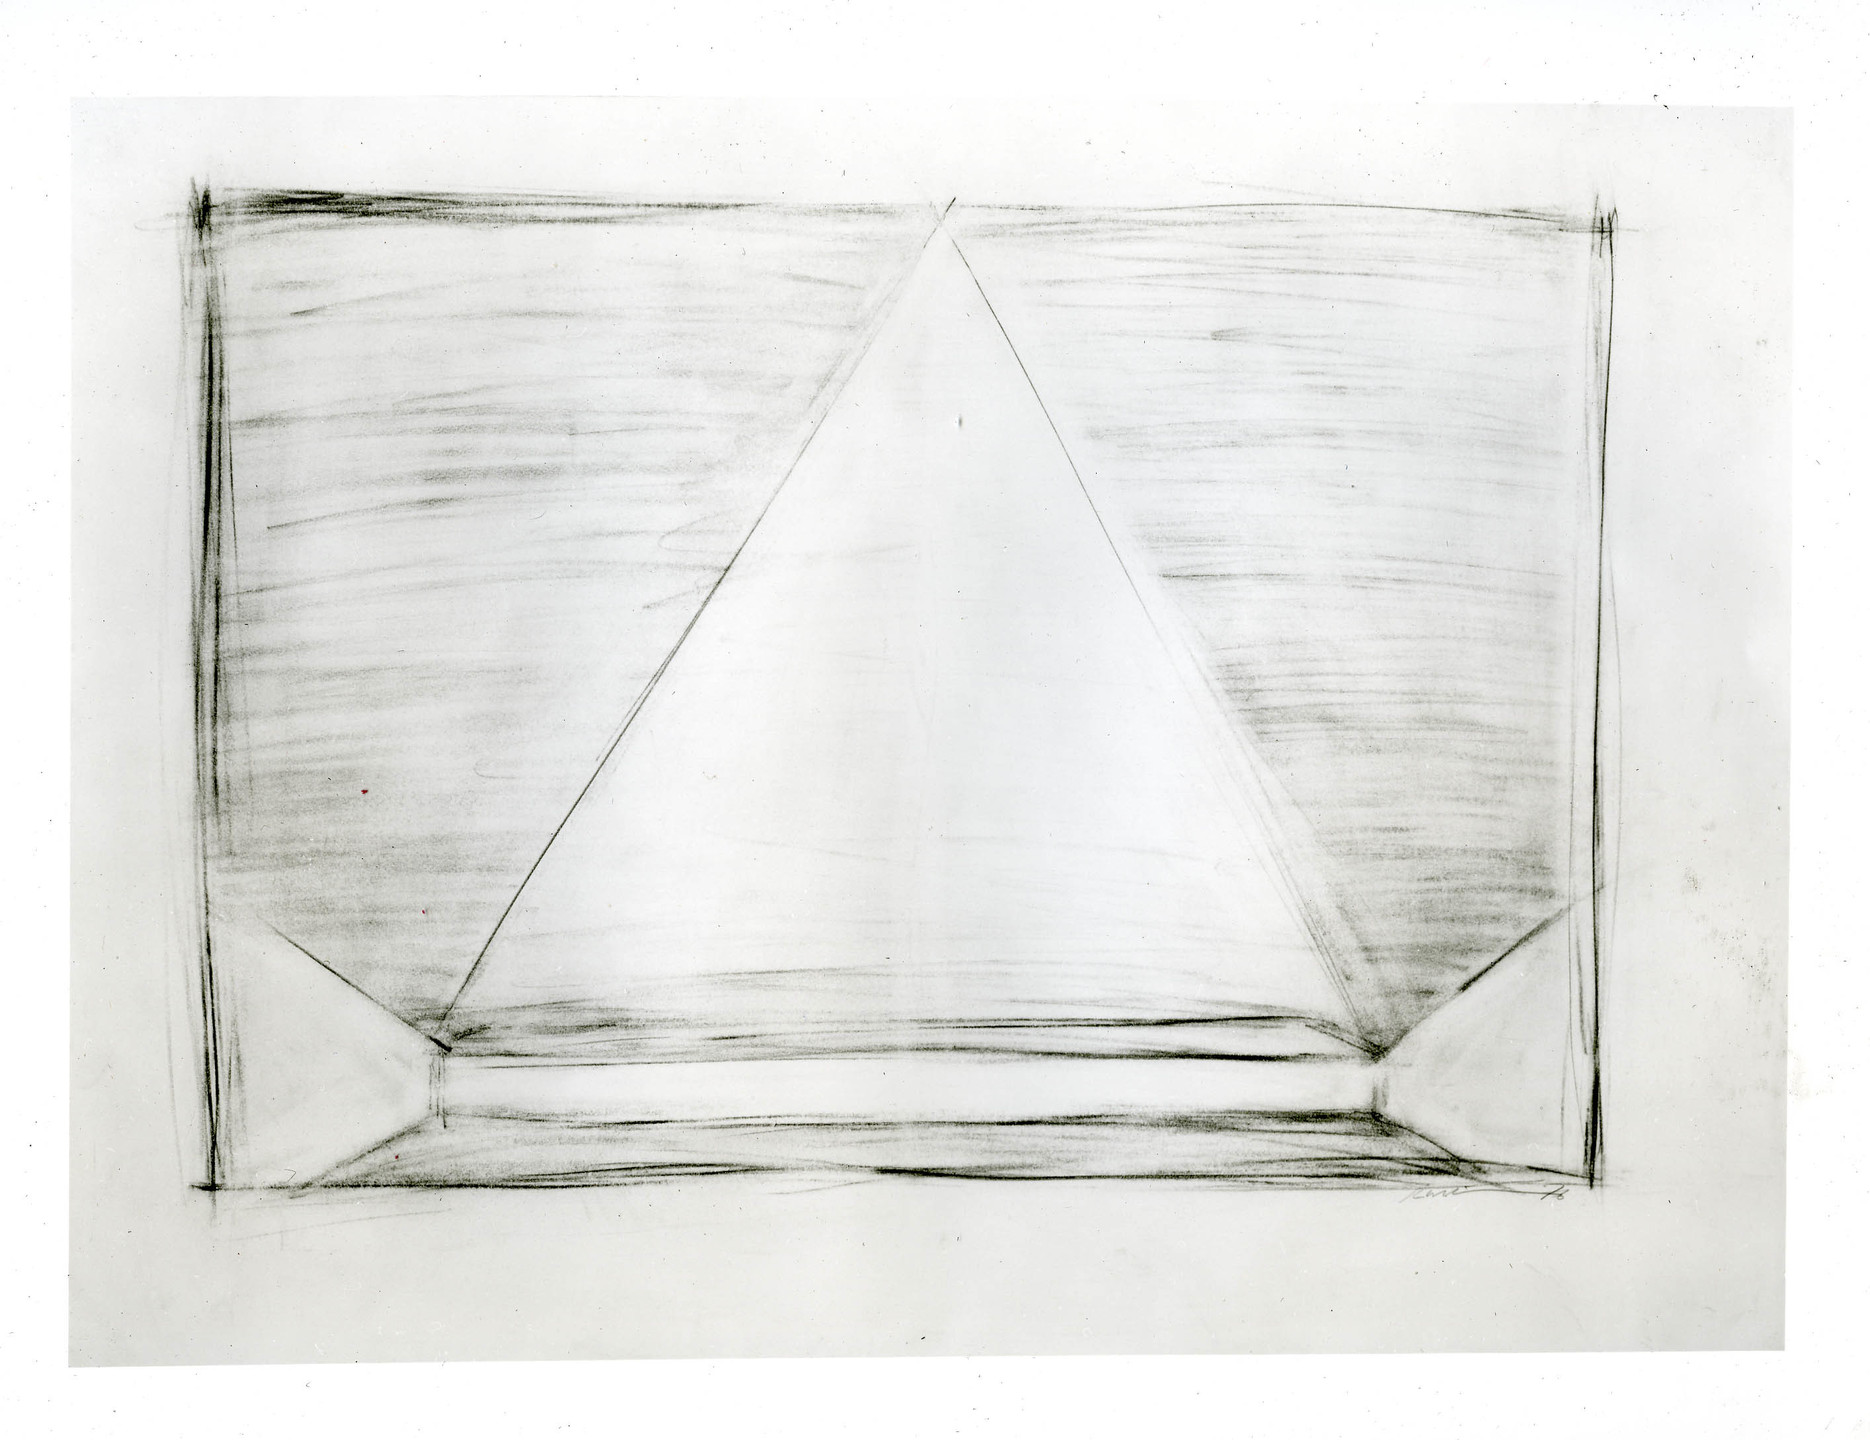 Robert Wilson. Drawing (Part of a suite of 4) The Bed Levitation Scene for Einstein on the Beach. 1976